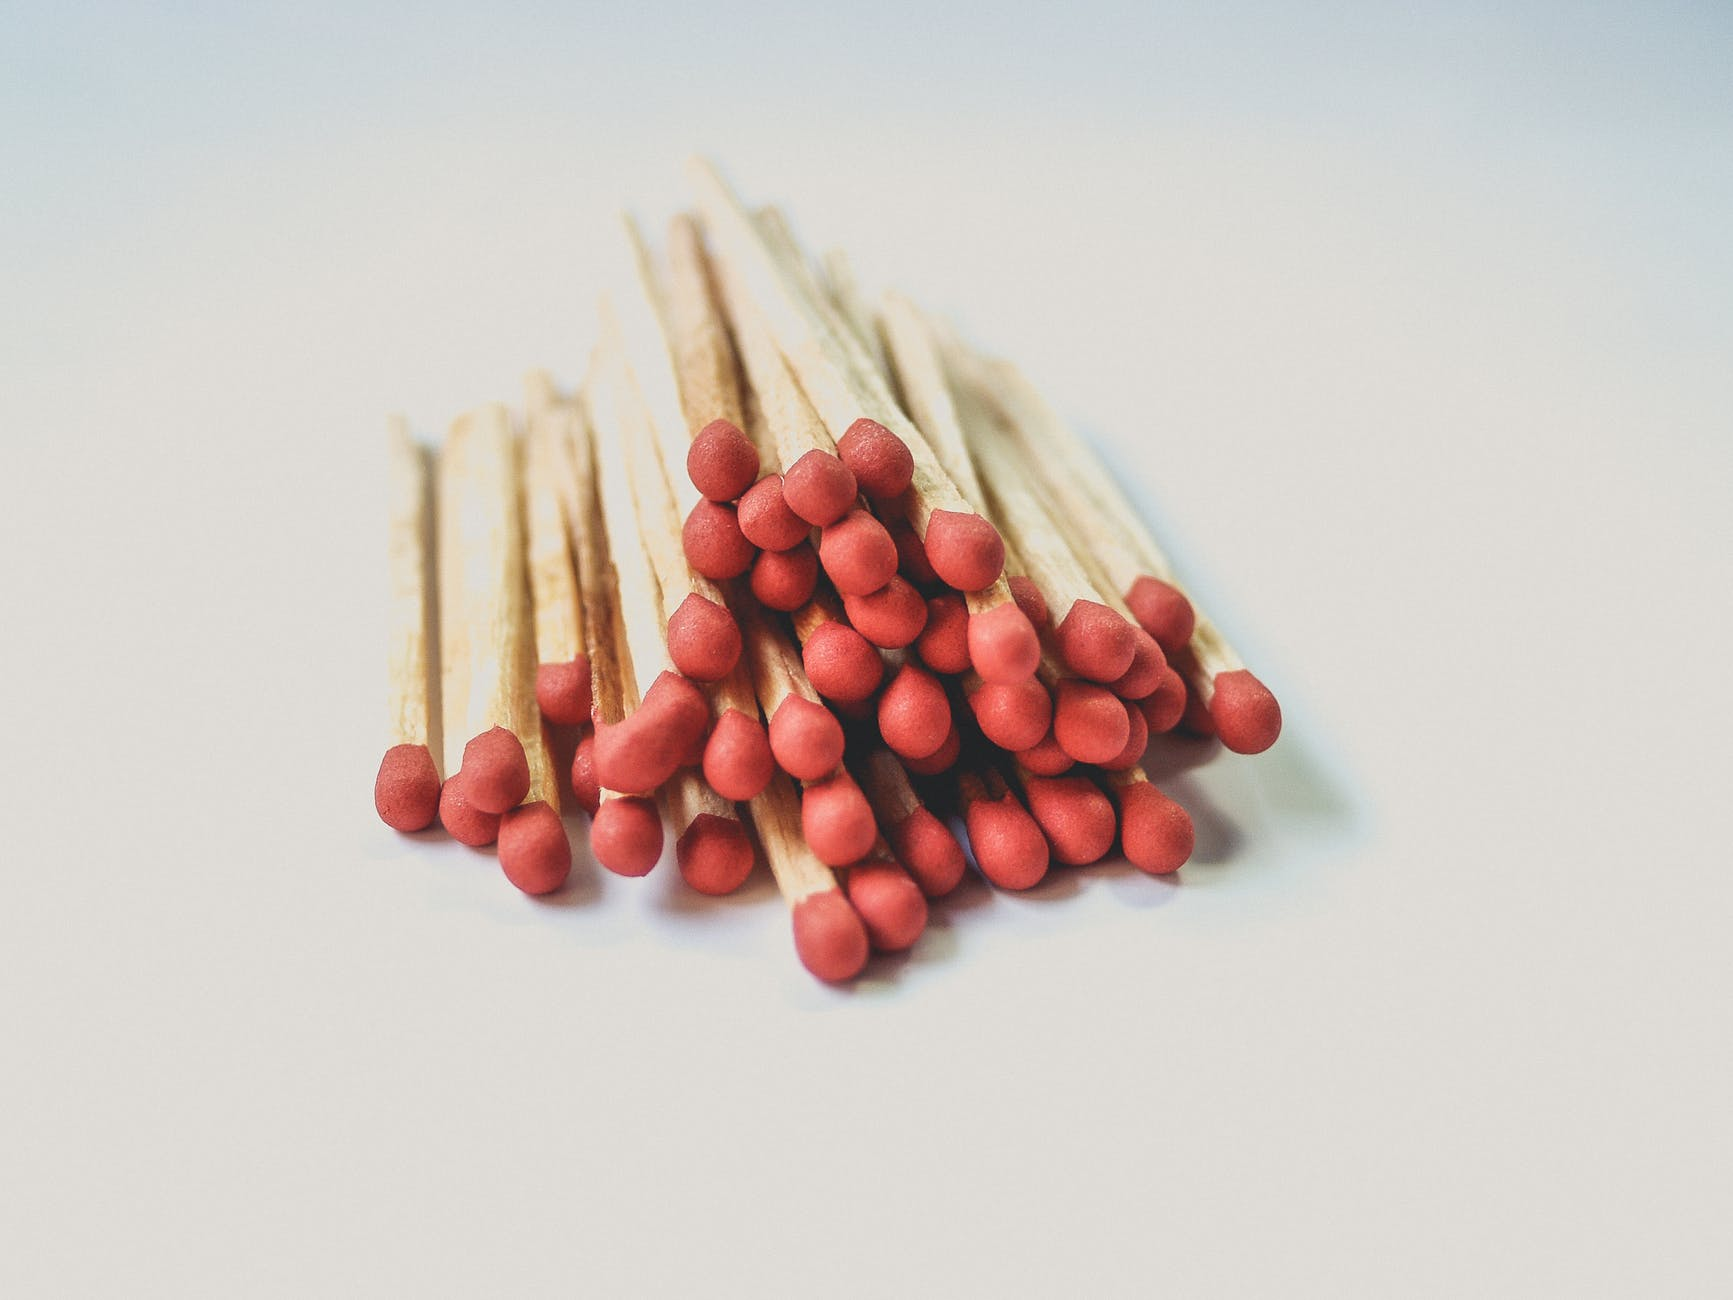 close up photography of matchsticks